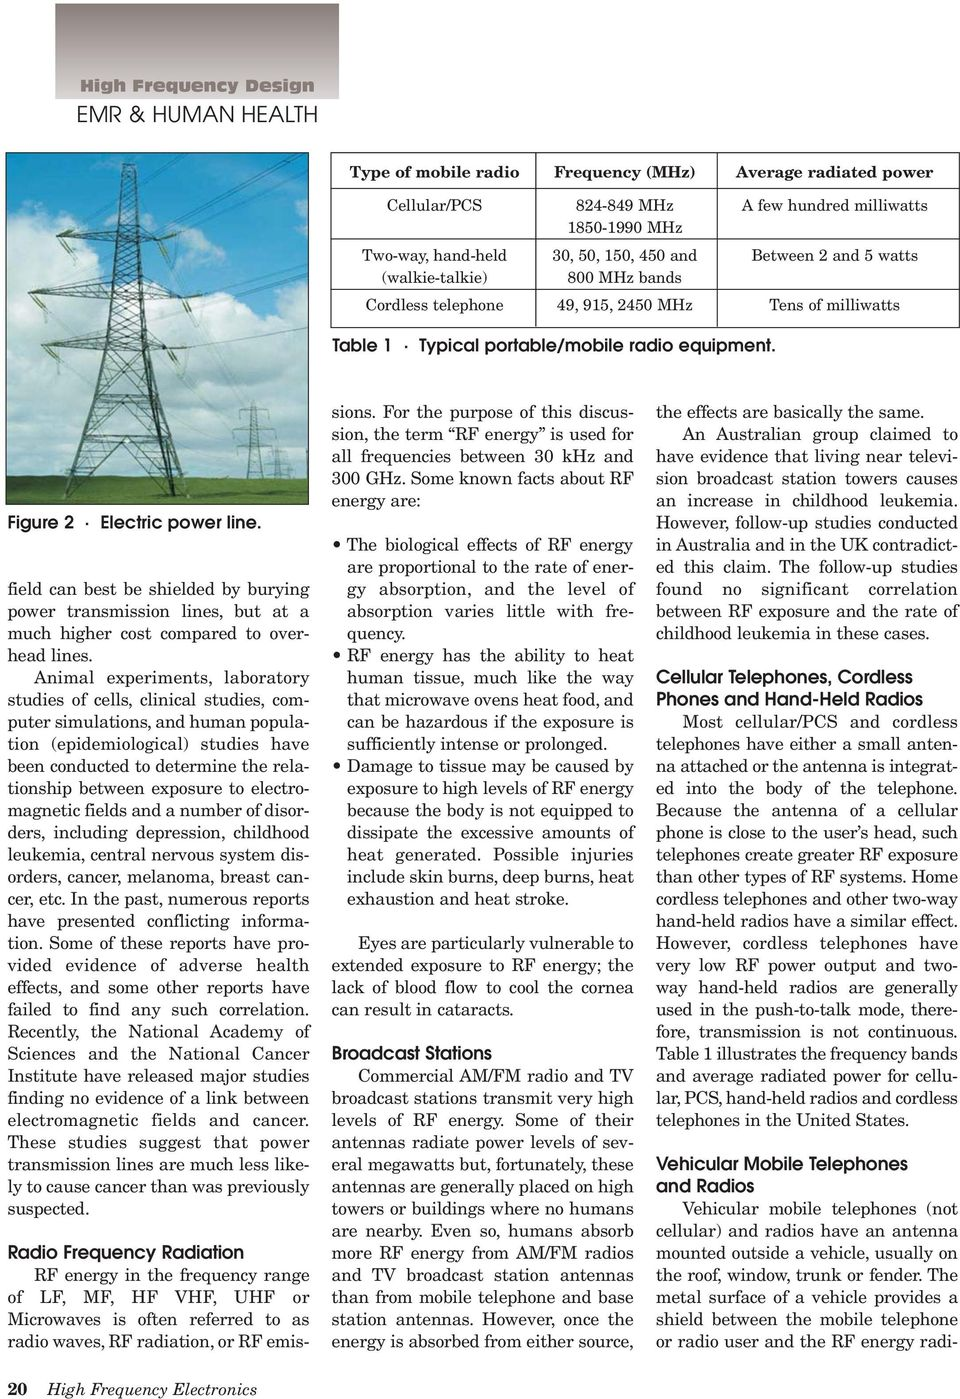 field can best be shielded by burying power transmission lines, but at a much higher cost compared to overhead lines.